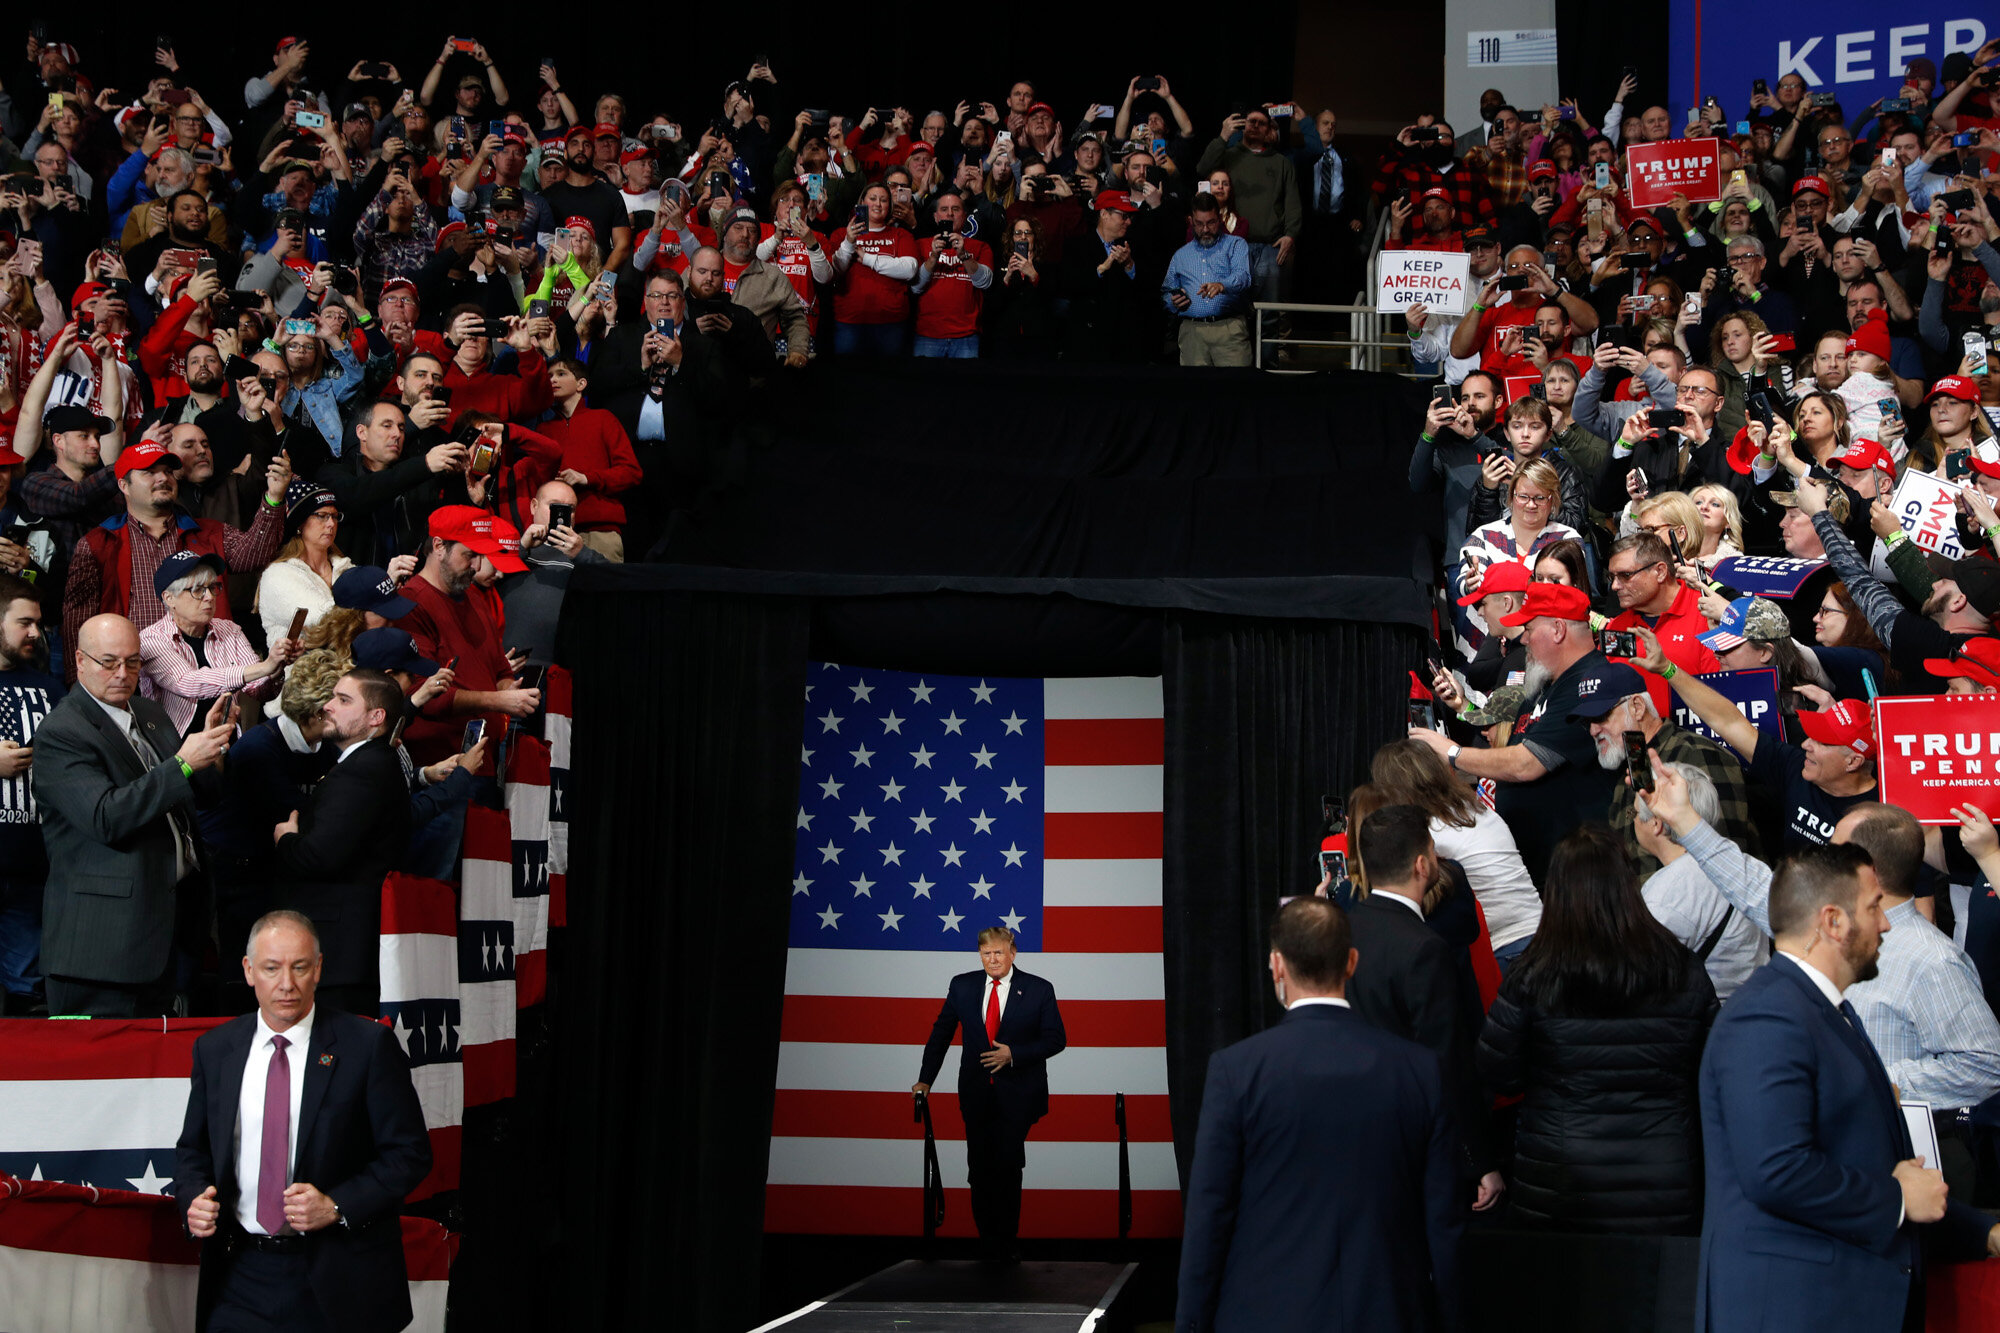 President Donald Trump arrives at a campaign rally in Toledo, Ohio, on Jan. 9, 2020. (AP Photo/Jacquelyn Martin)